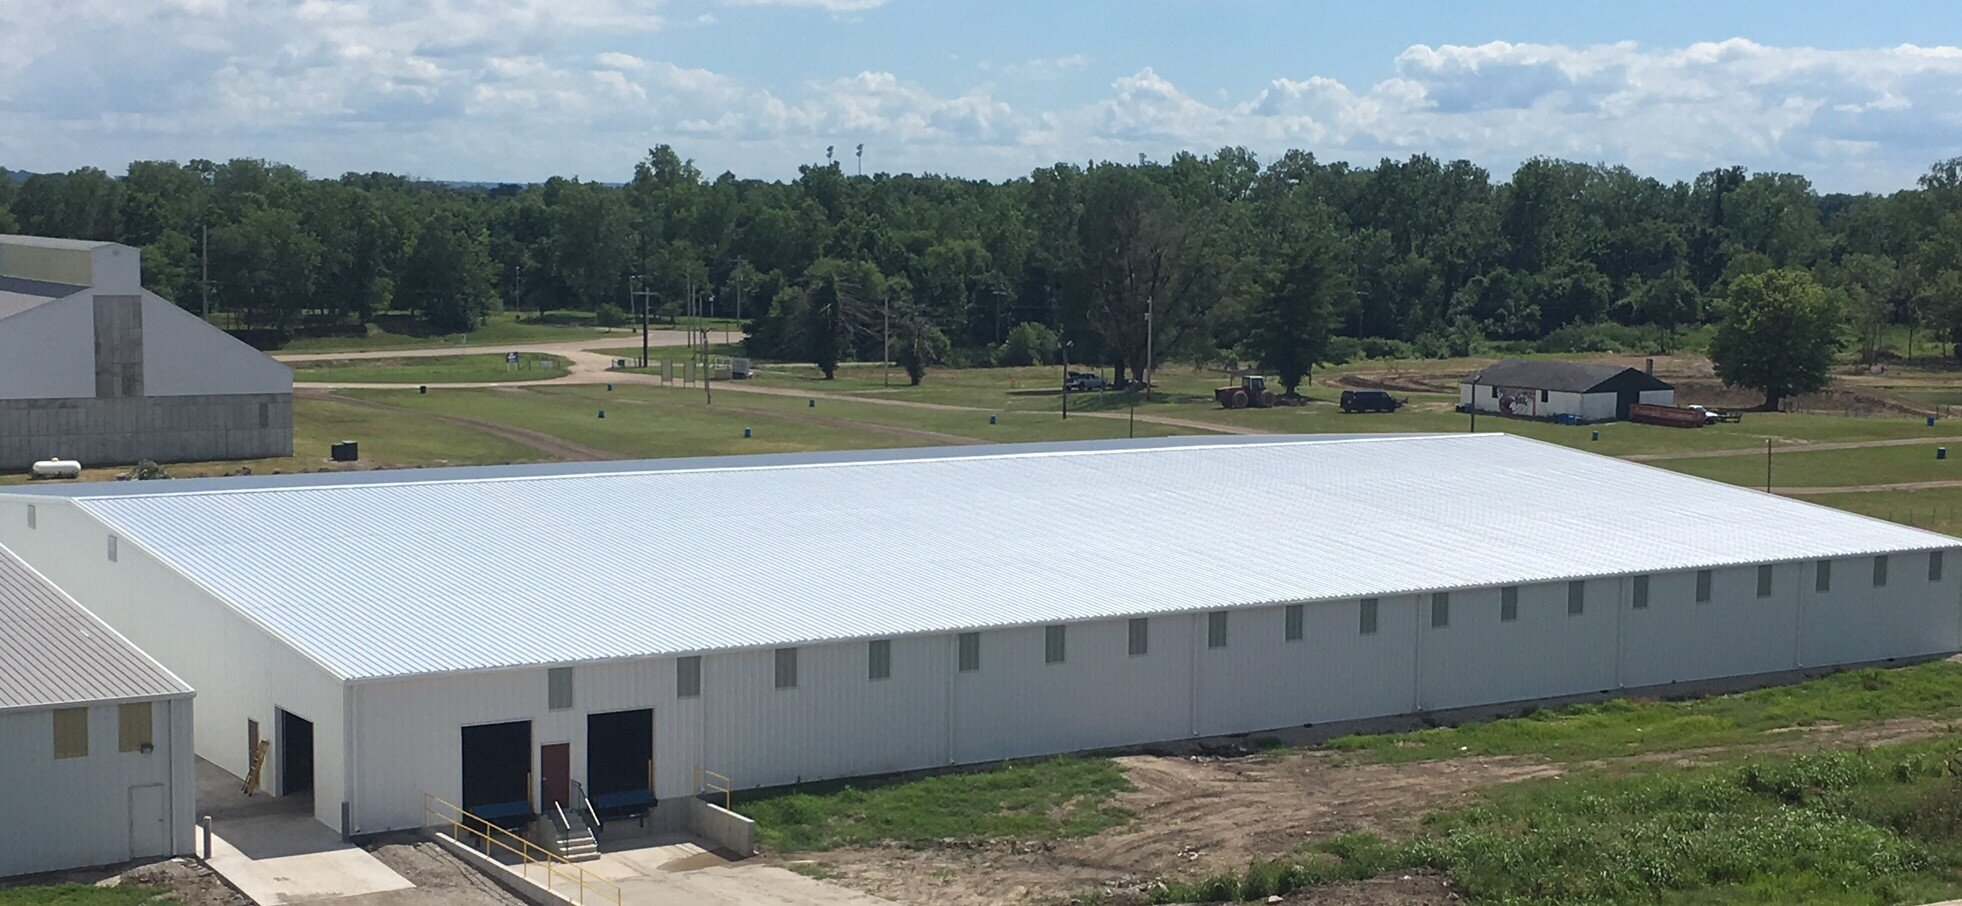 A new 50,000 square foot warehouse built in 2018.